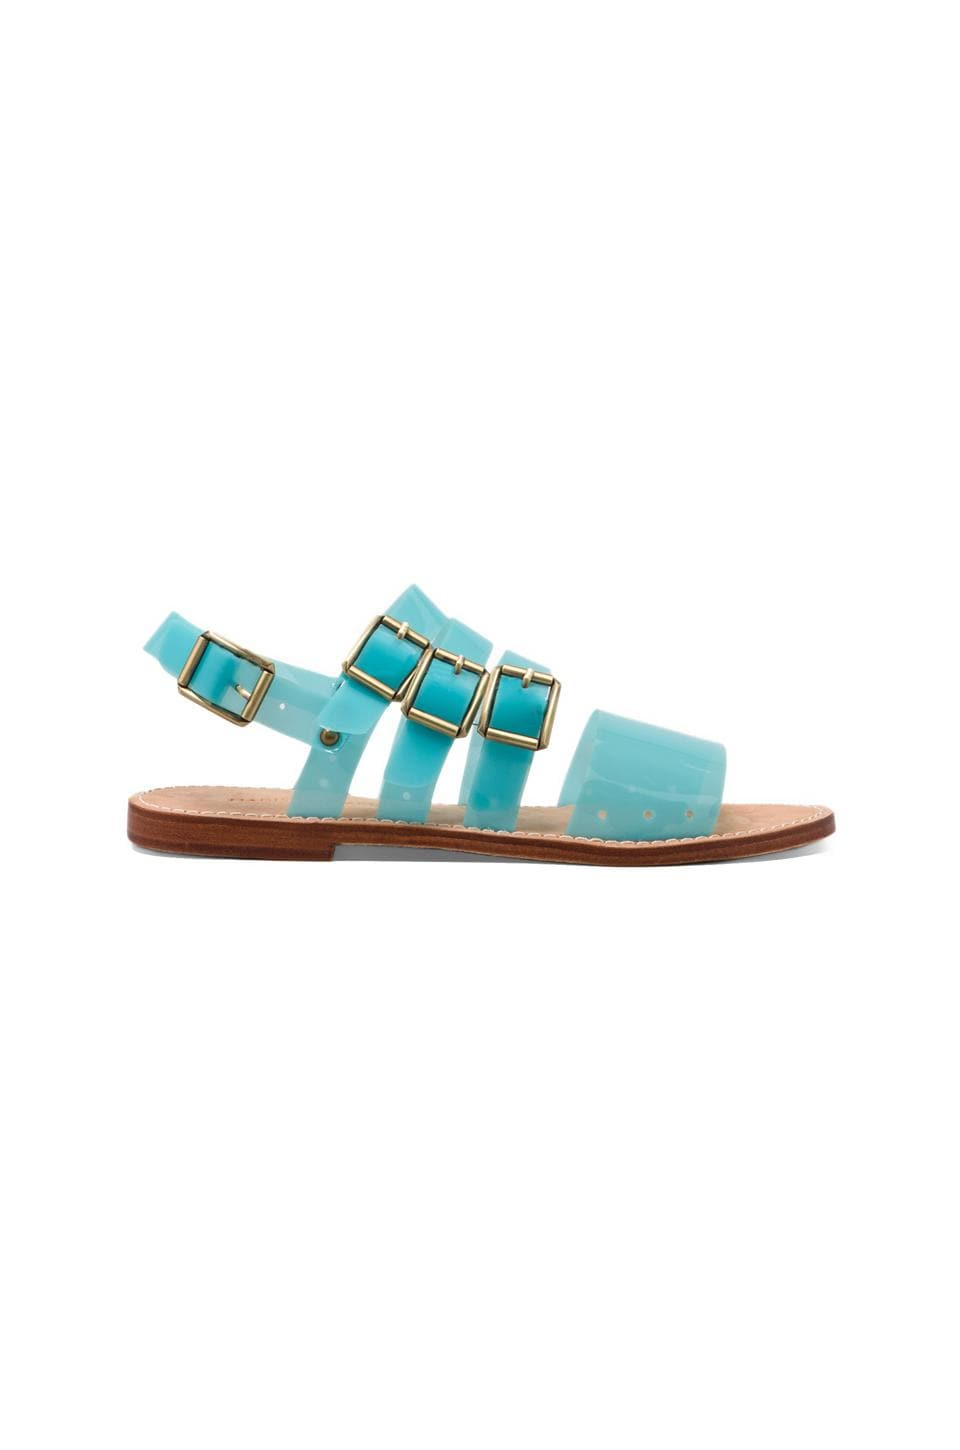 MADISON HARDING Ursula Sandal in Blue